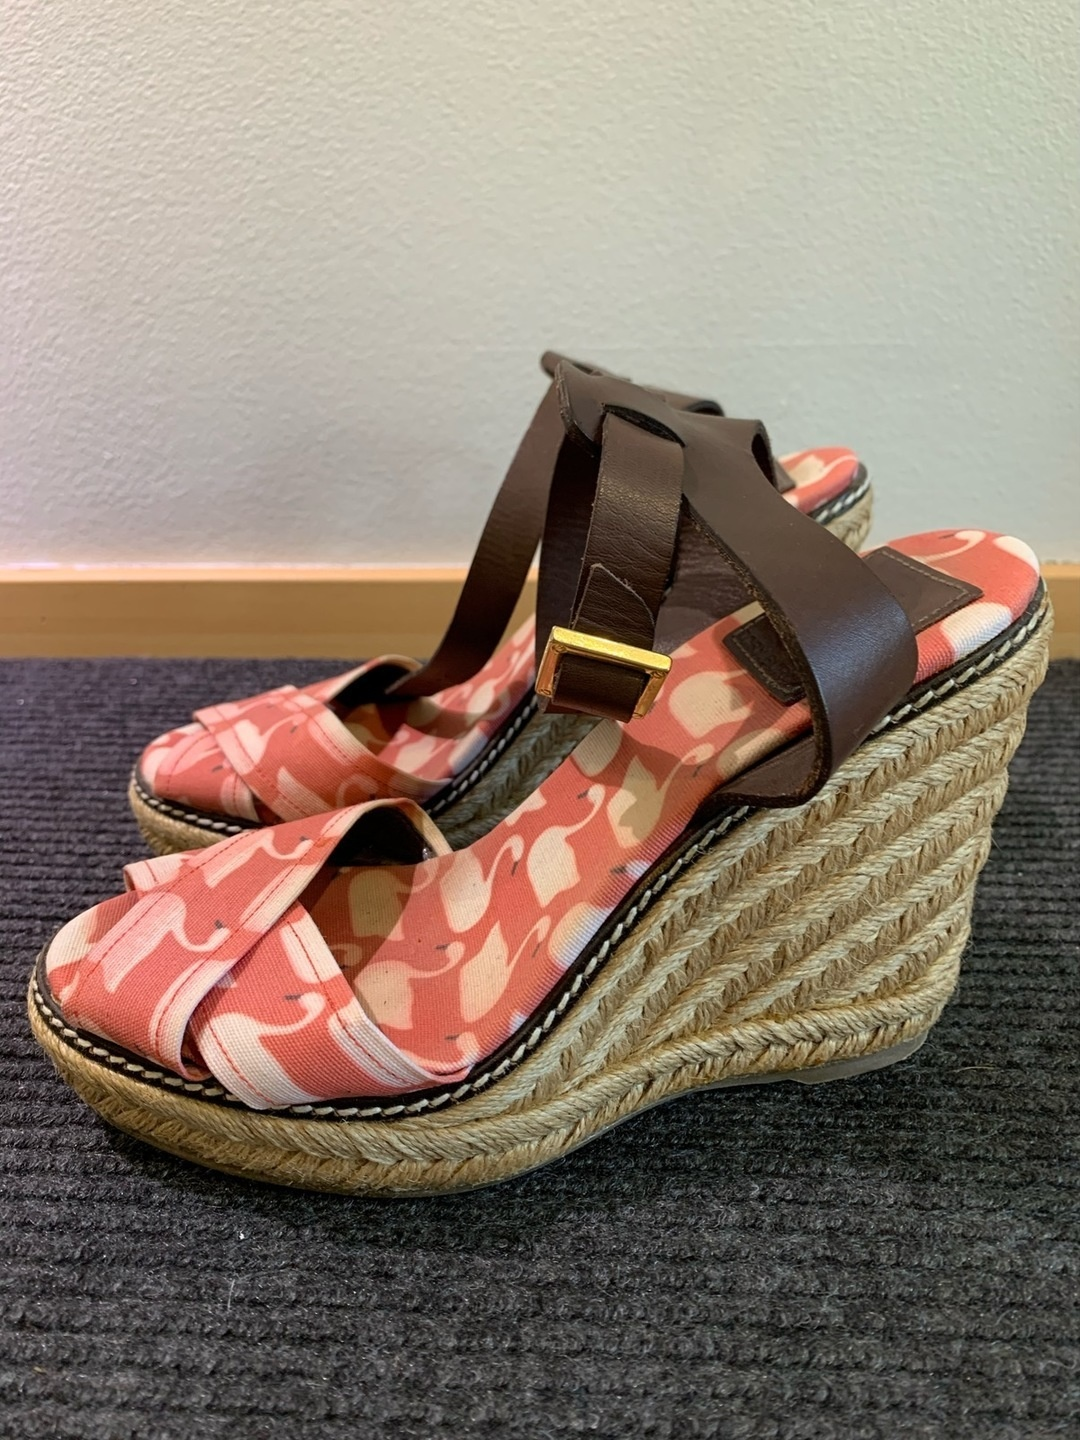 Women's sandals & slippers - TORY BURCH photo 1